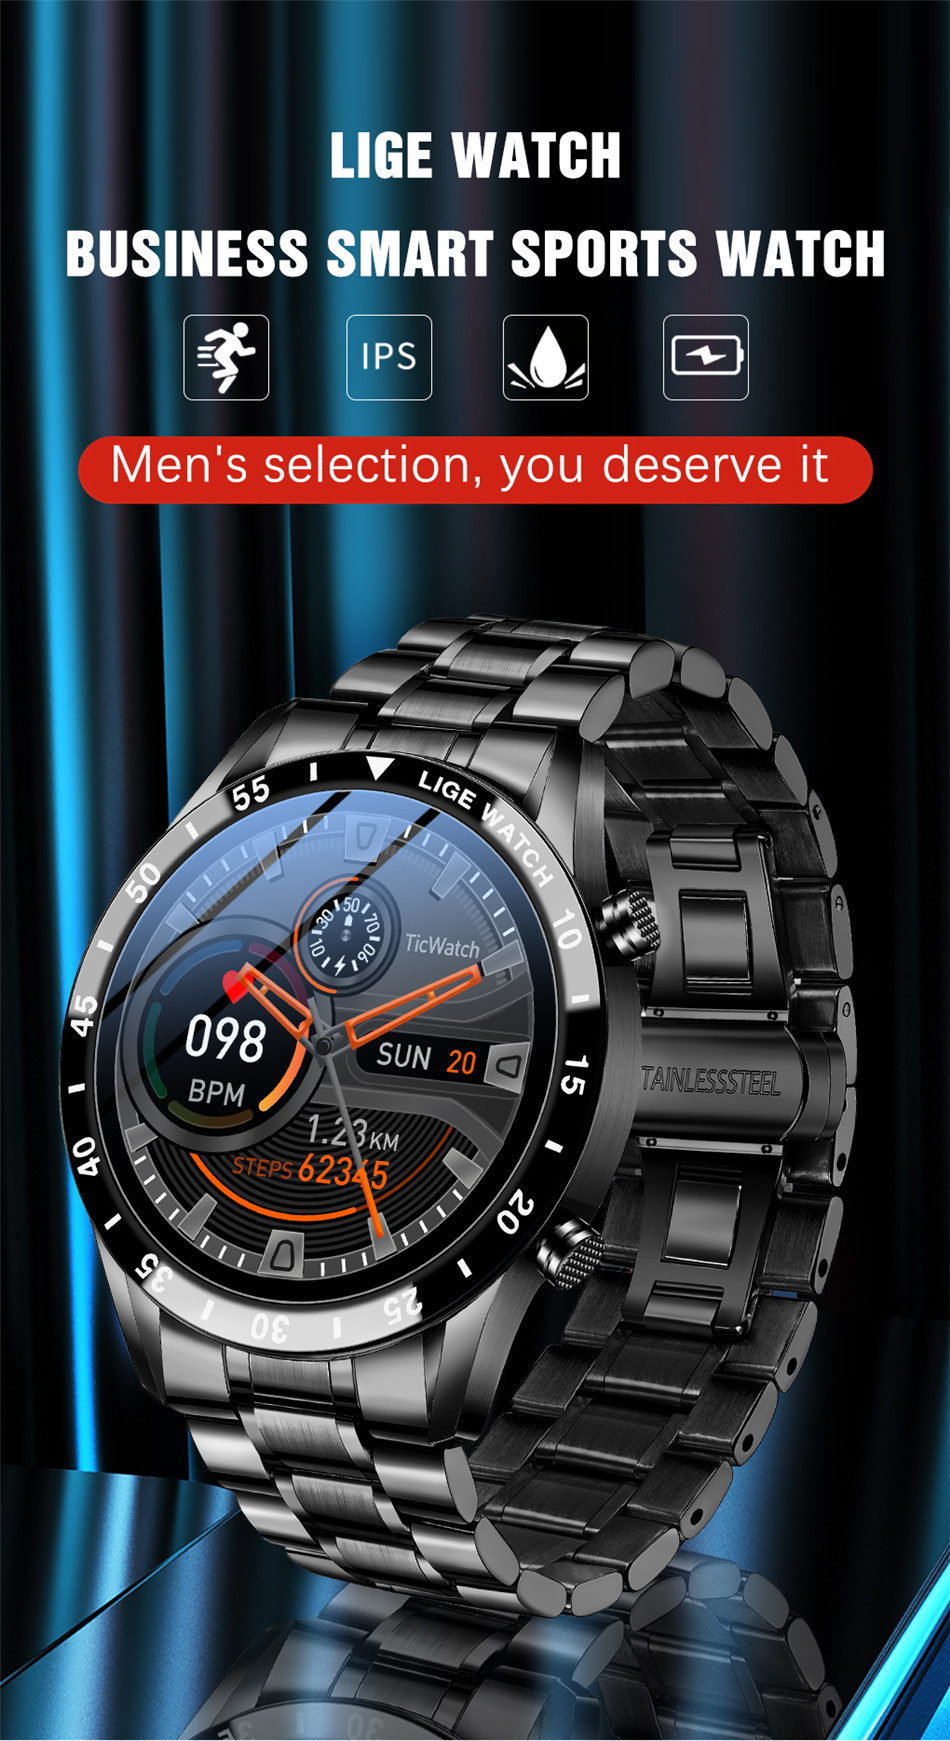 H12601da1329d4f678e9e4b1840e402fdm LIGE 2020 New Smart Watch Men Full Touch Screen Sports Fitness Watch IP67 Waterproof Bluetooth For Android ios smartwatch Mens